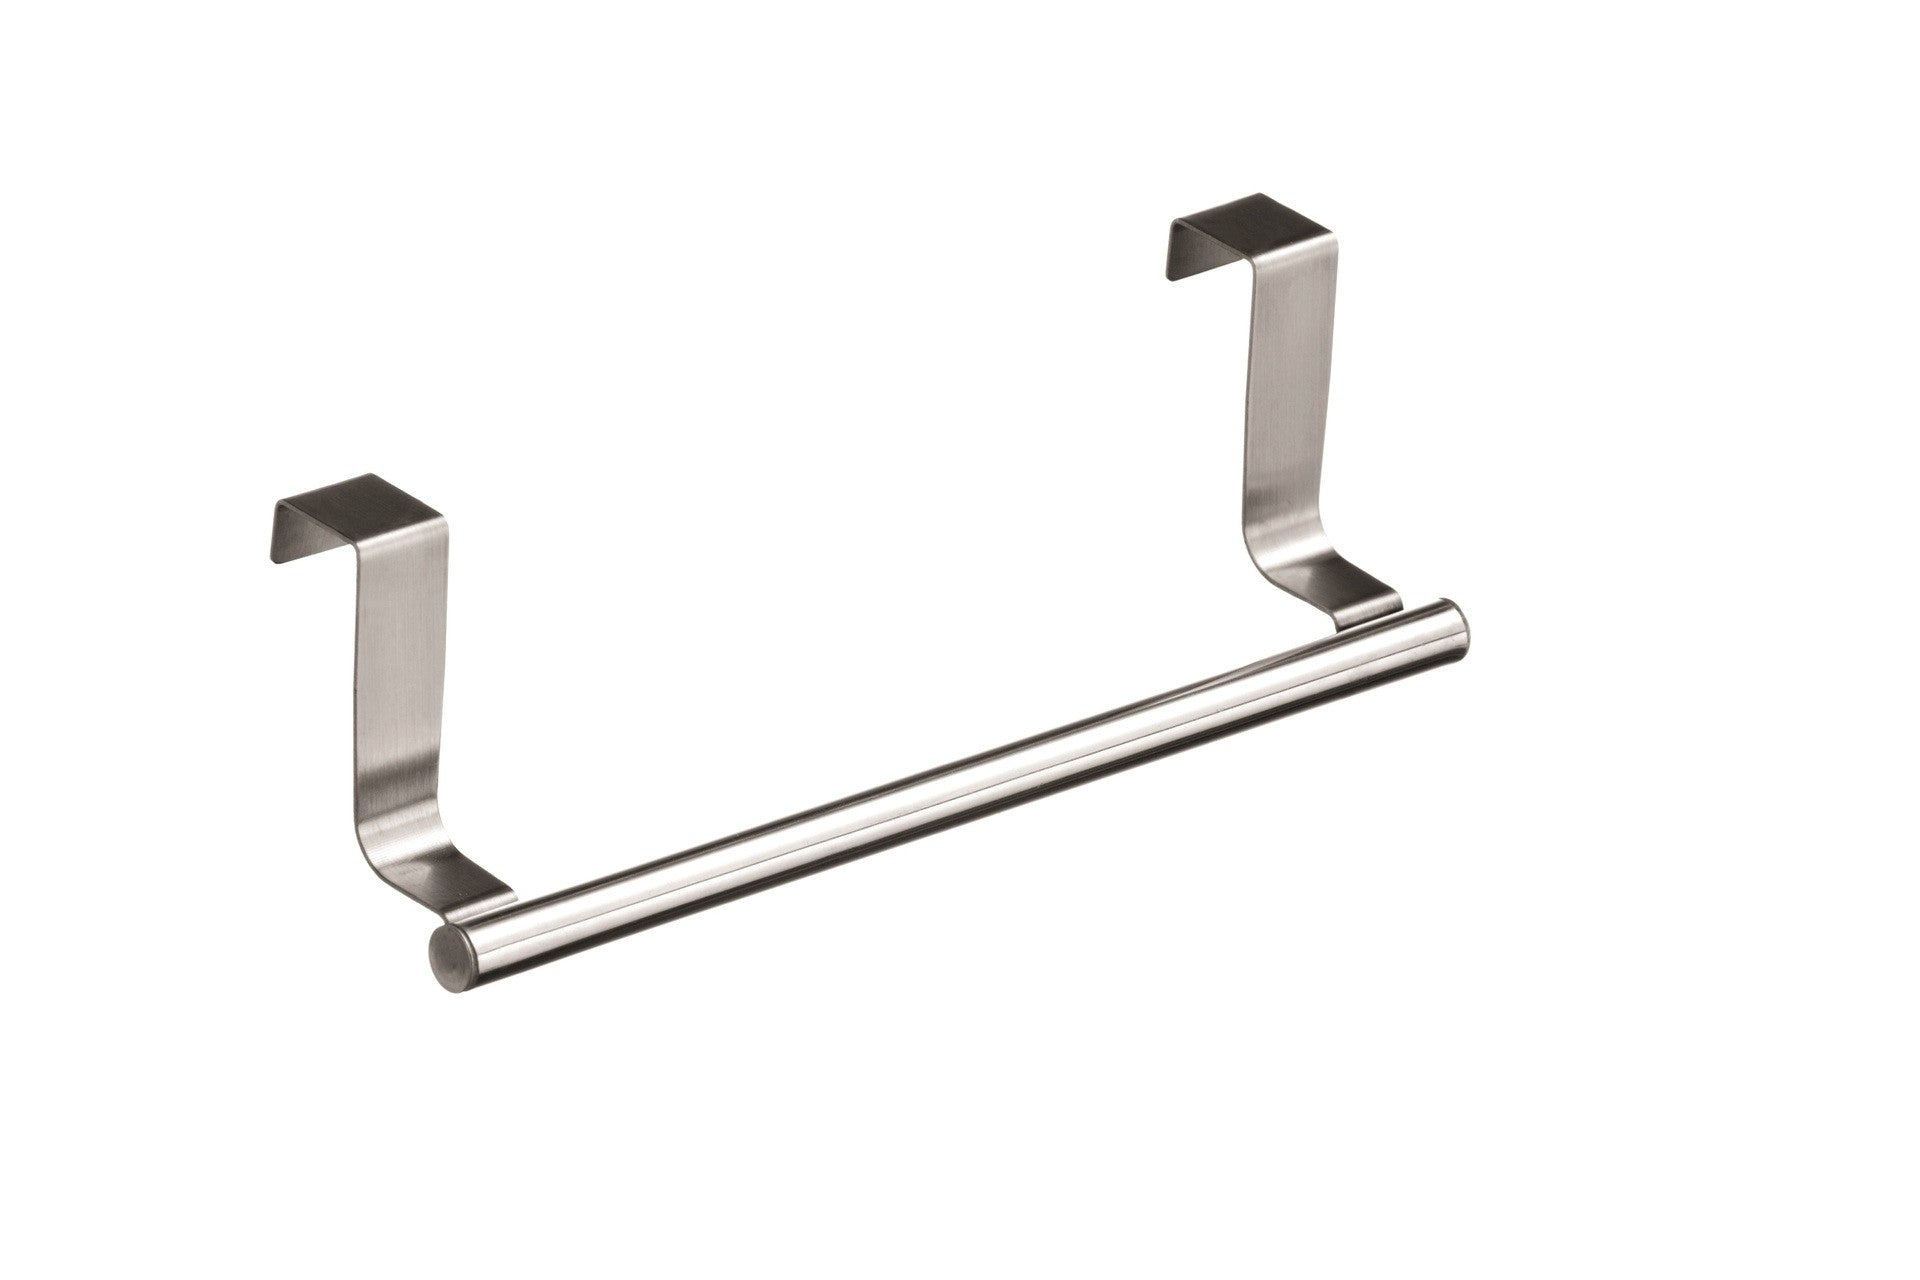 Premier 23cm Stainless Steel Over Cabinet Hook-0509694 - Homely Nigeria